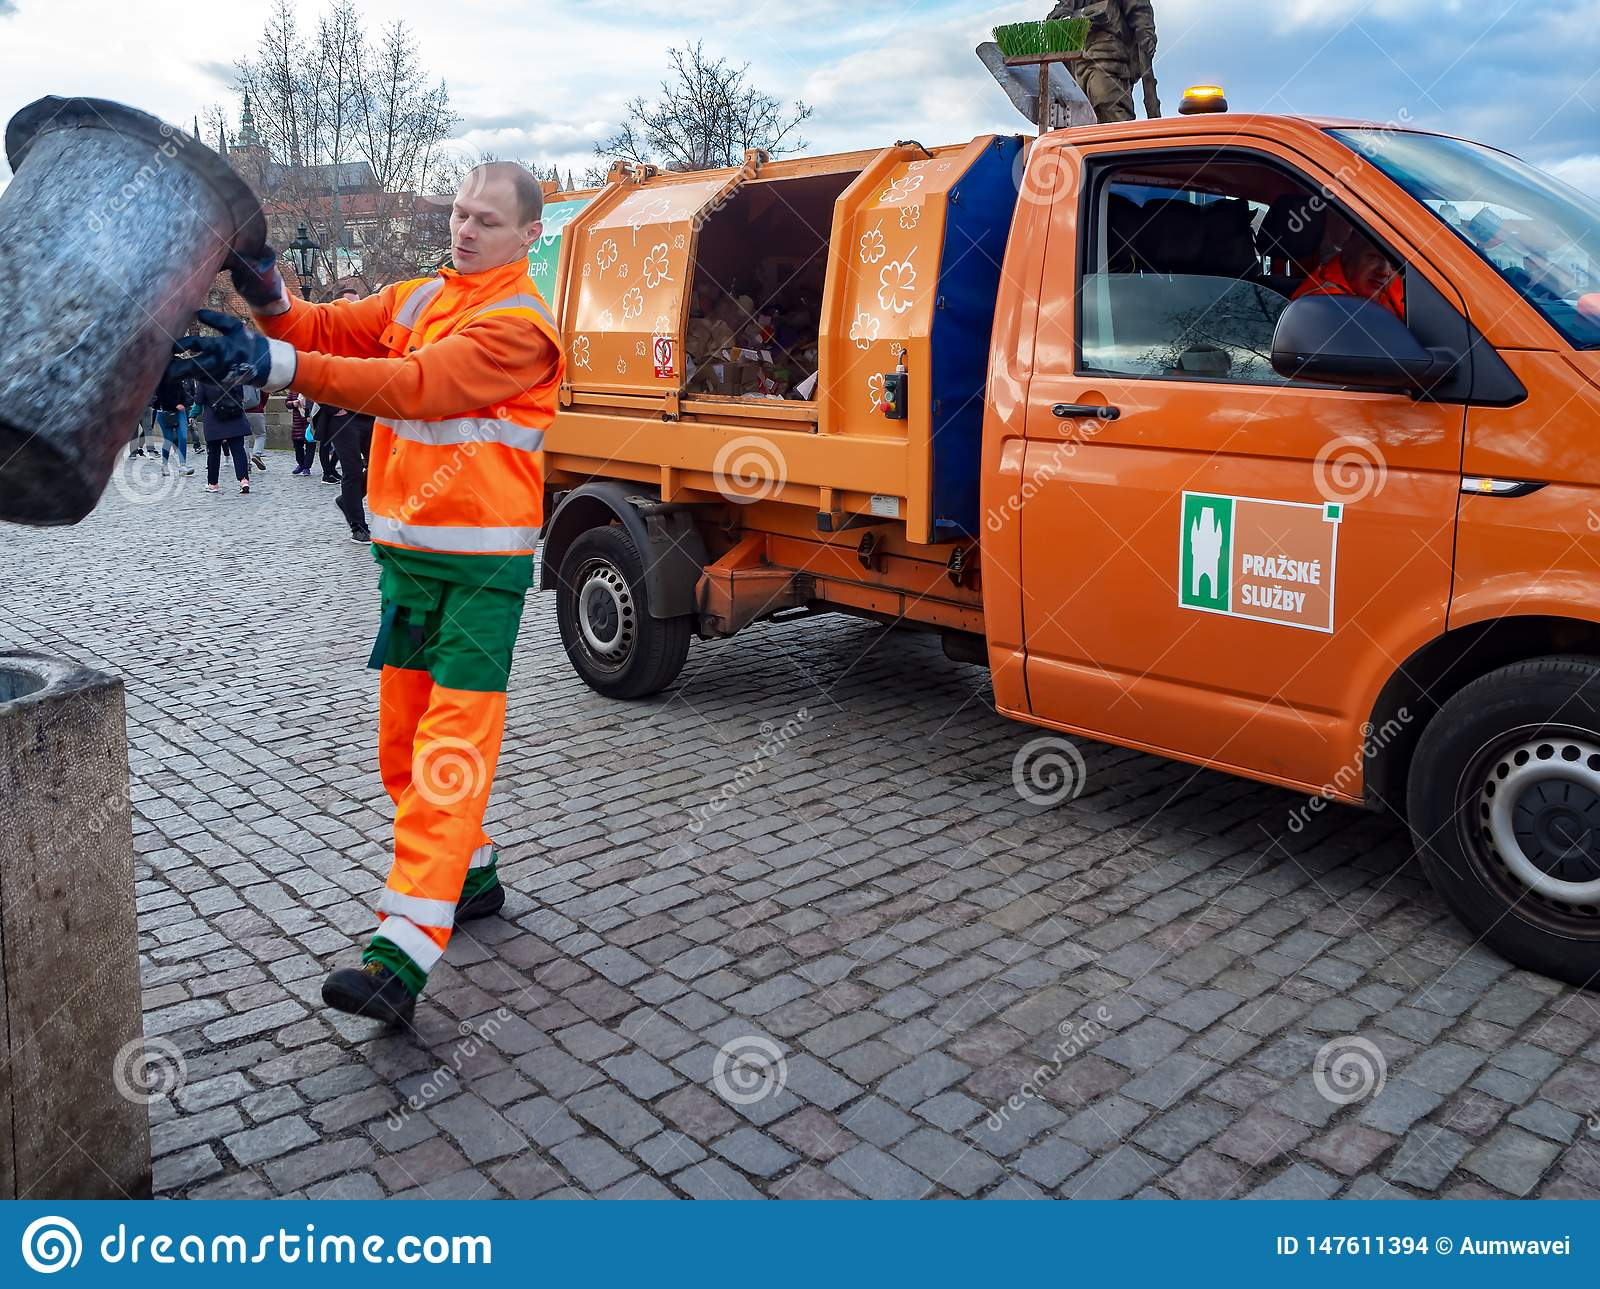 The garbage collector is pouring garbage into the garbage truck